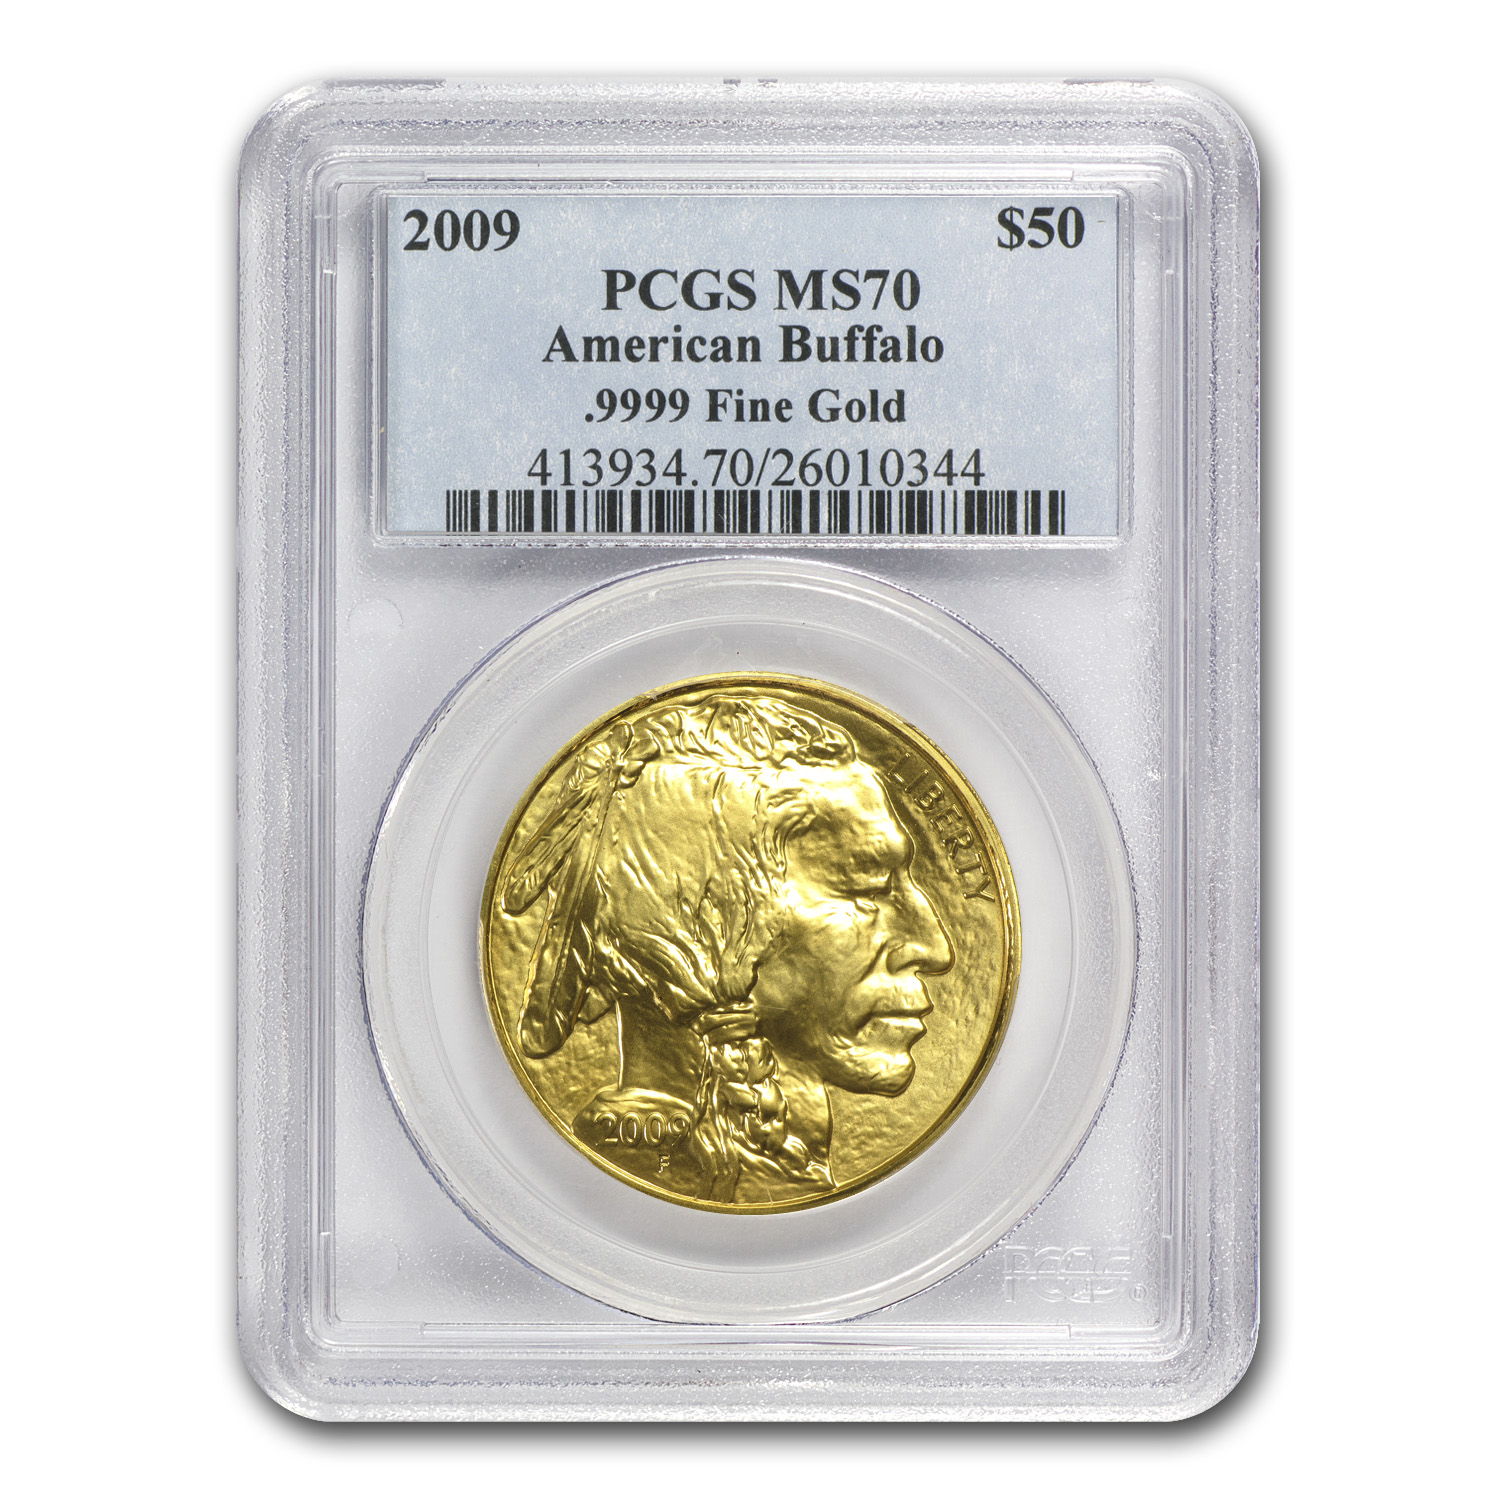 2009 1 oz Gold American Buffalo MS-70 PCGS